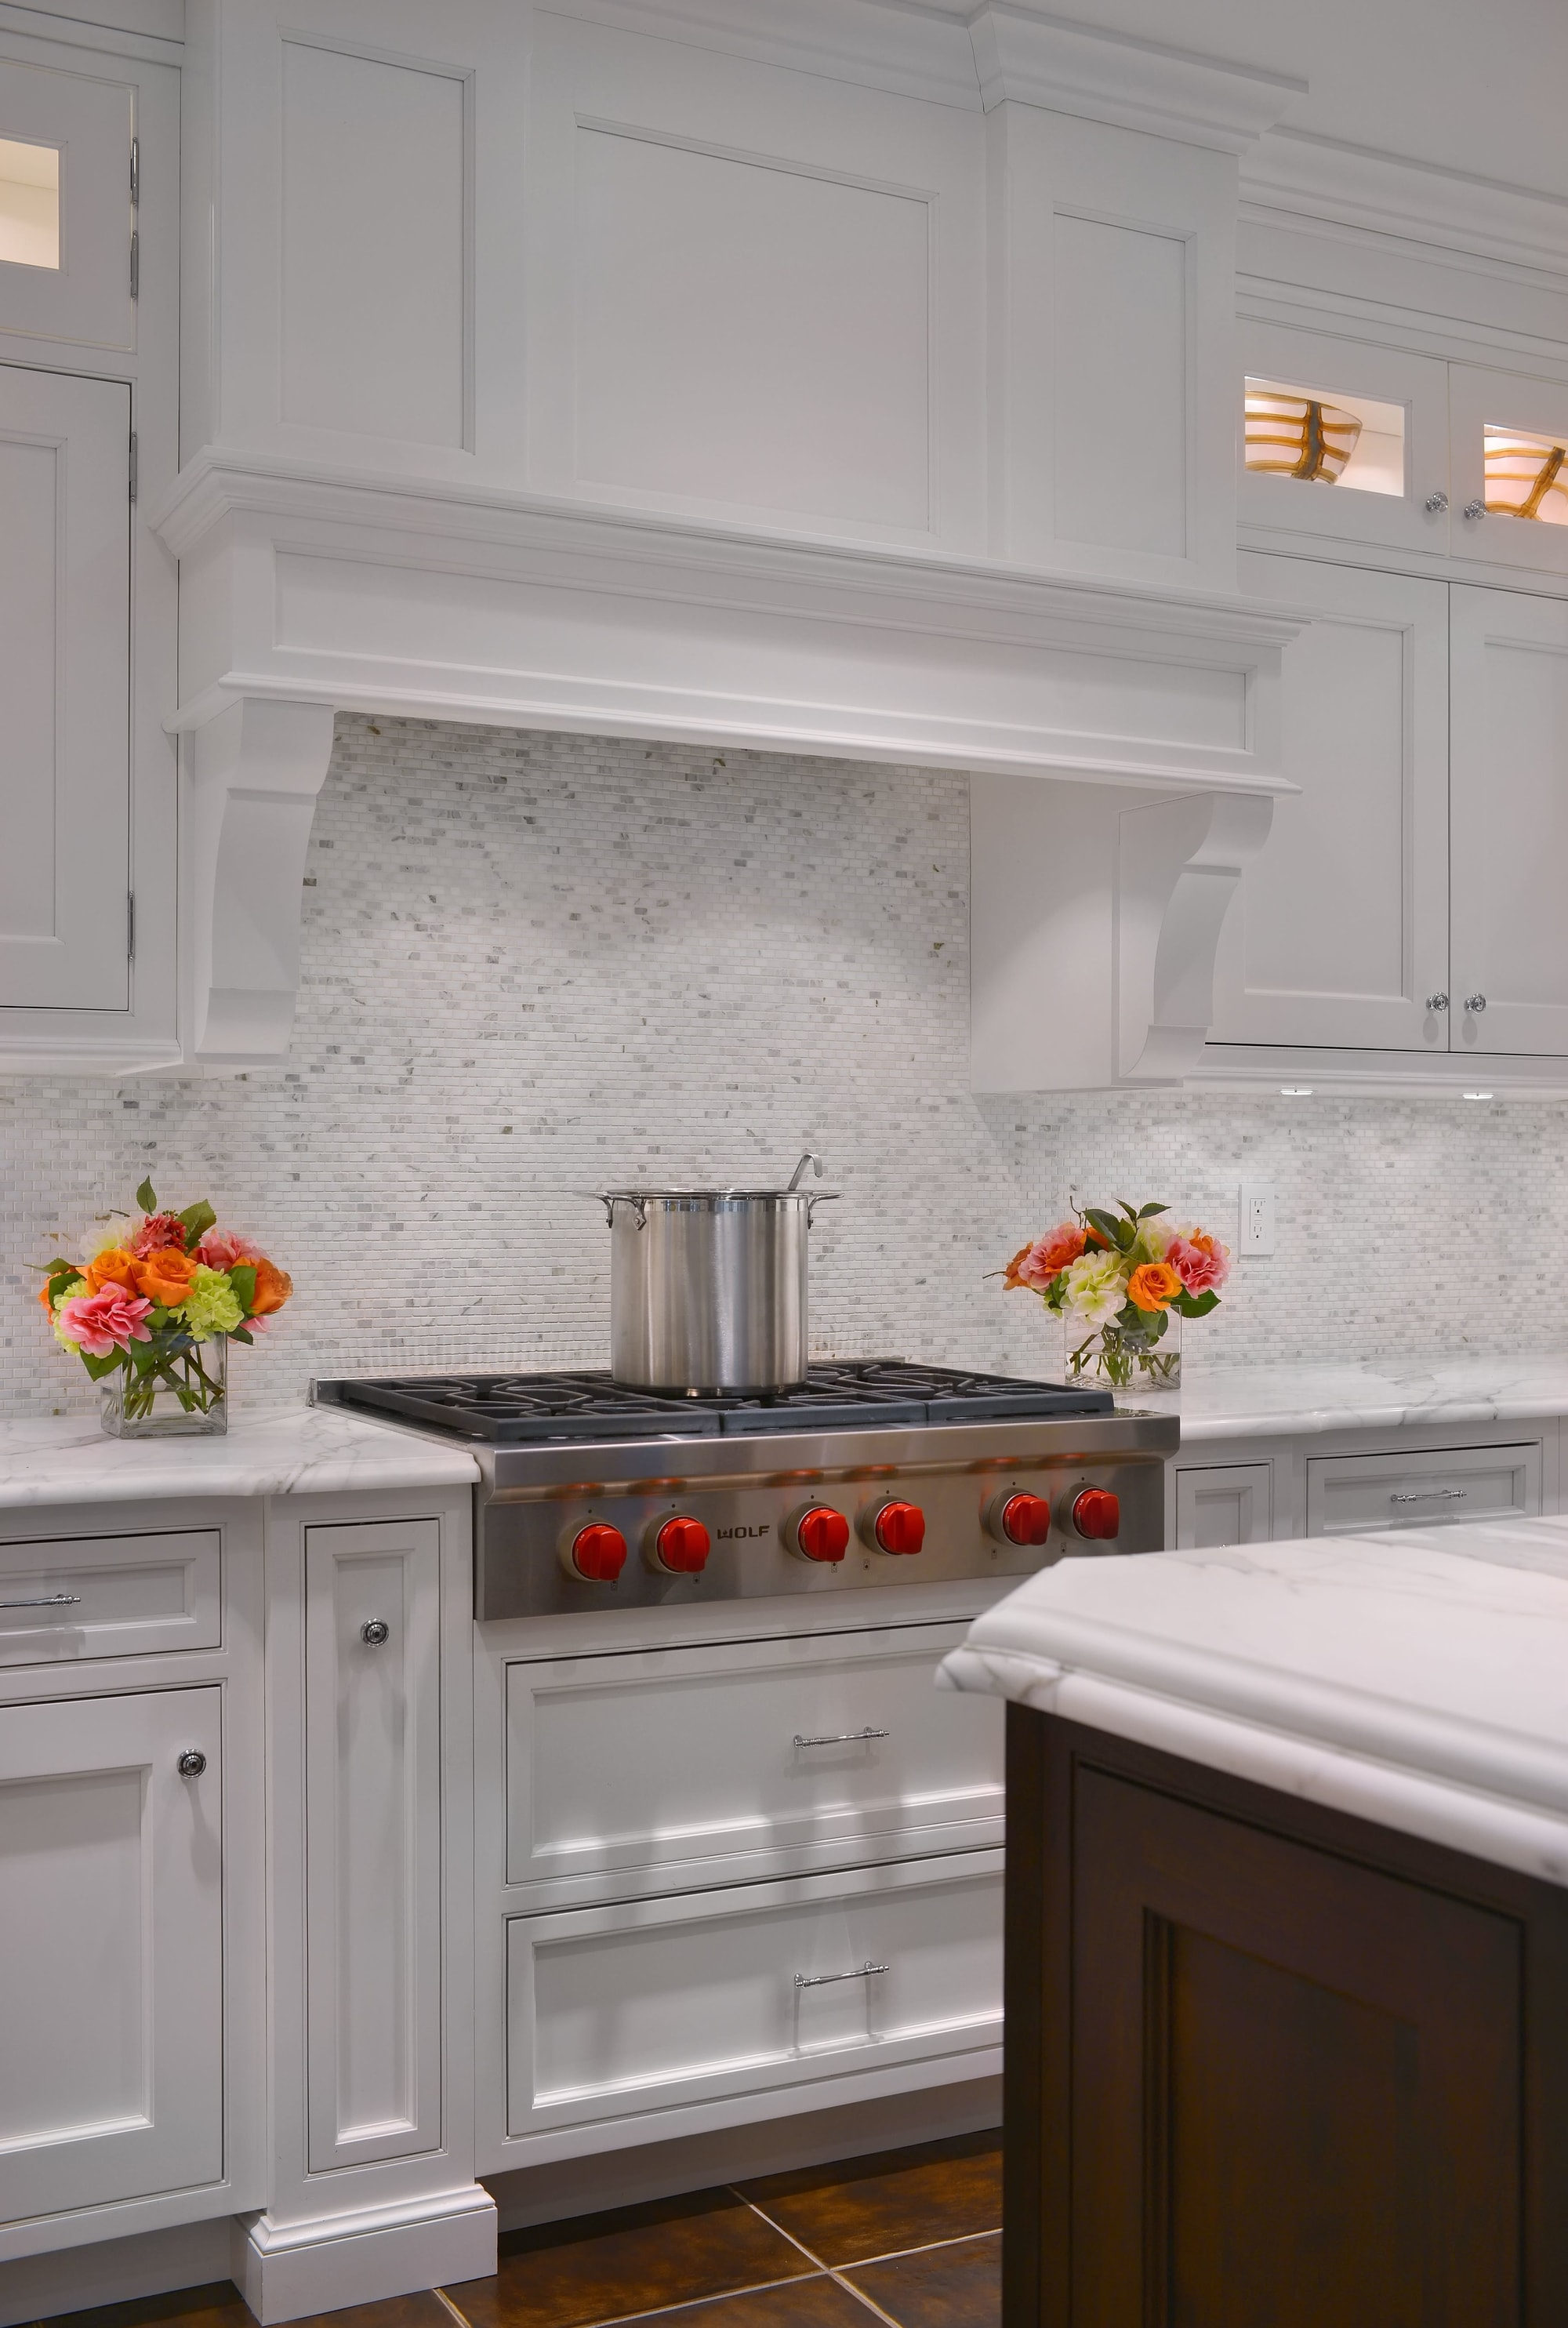 Transitional style kitchen with stainless range